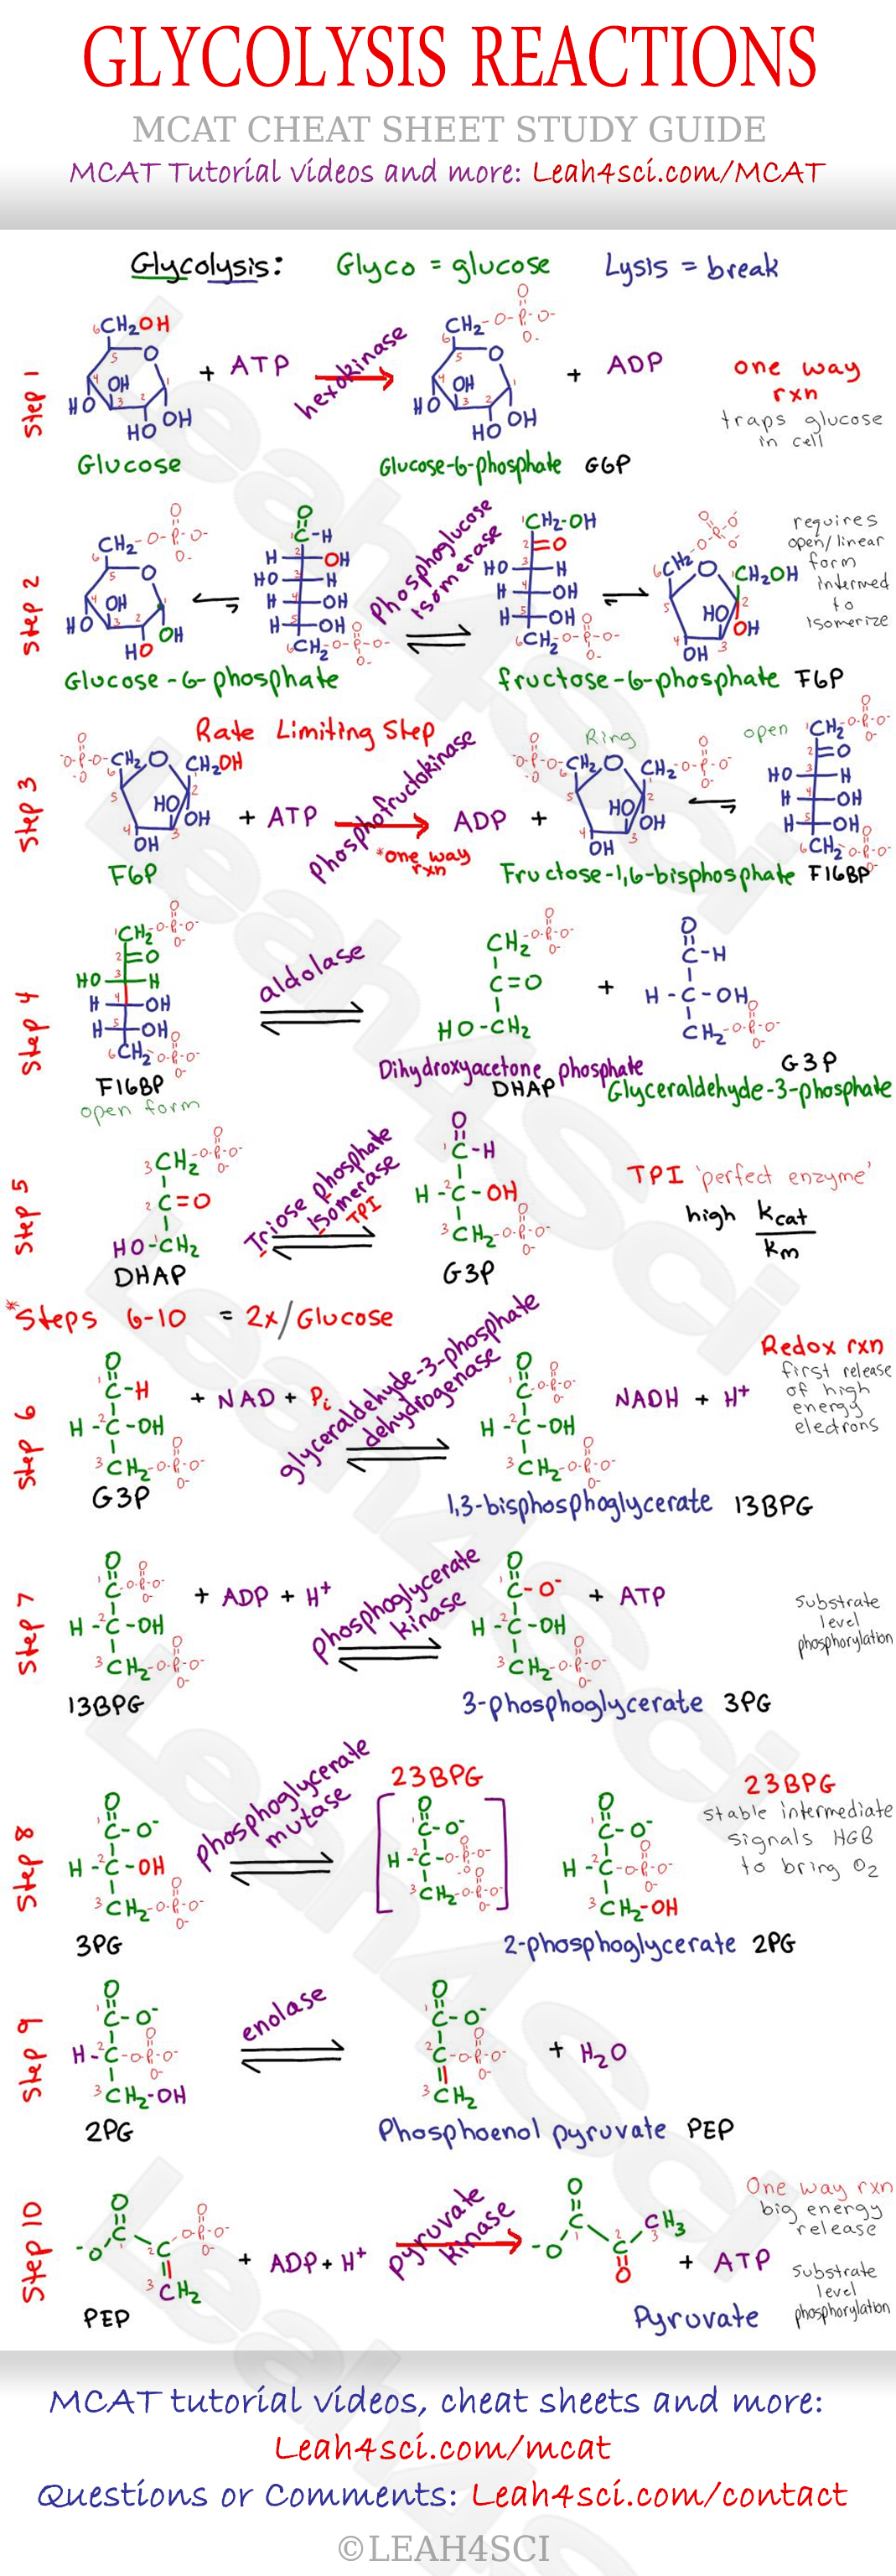 Image-from-http-leahsci-com-wp-content-uploads-Glycolysis-Reaction-Steps-MCAT-Cheat-Sheet-wallpaper-wp5406113